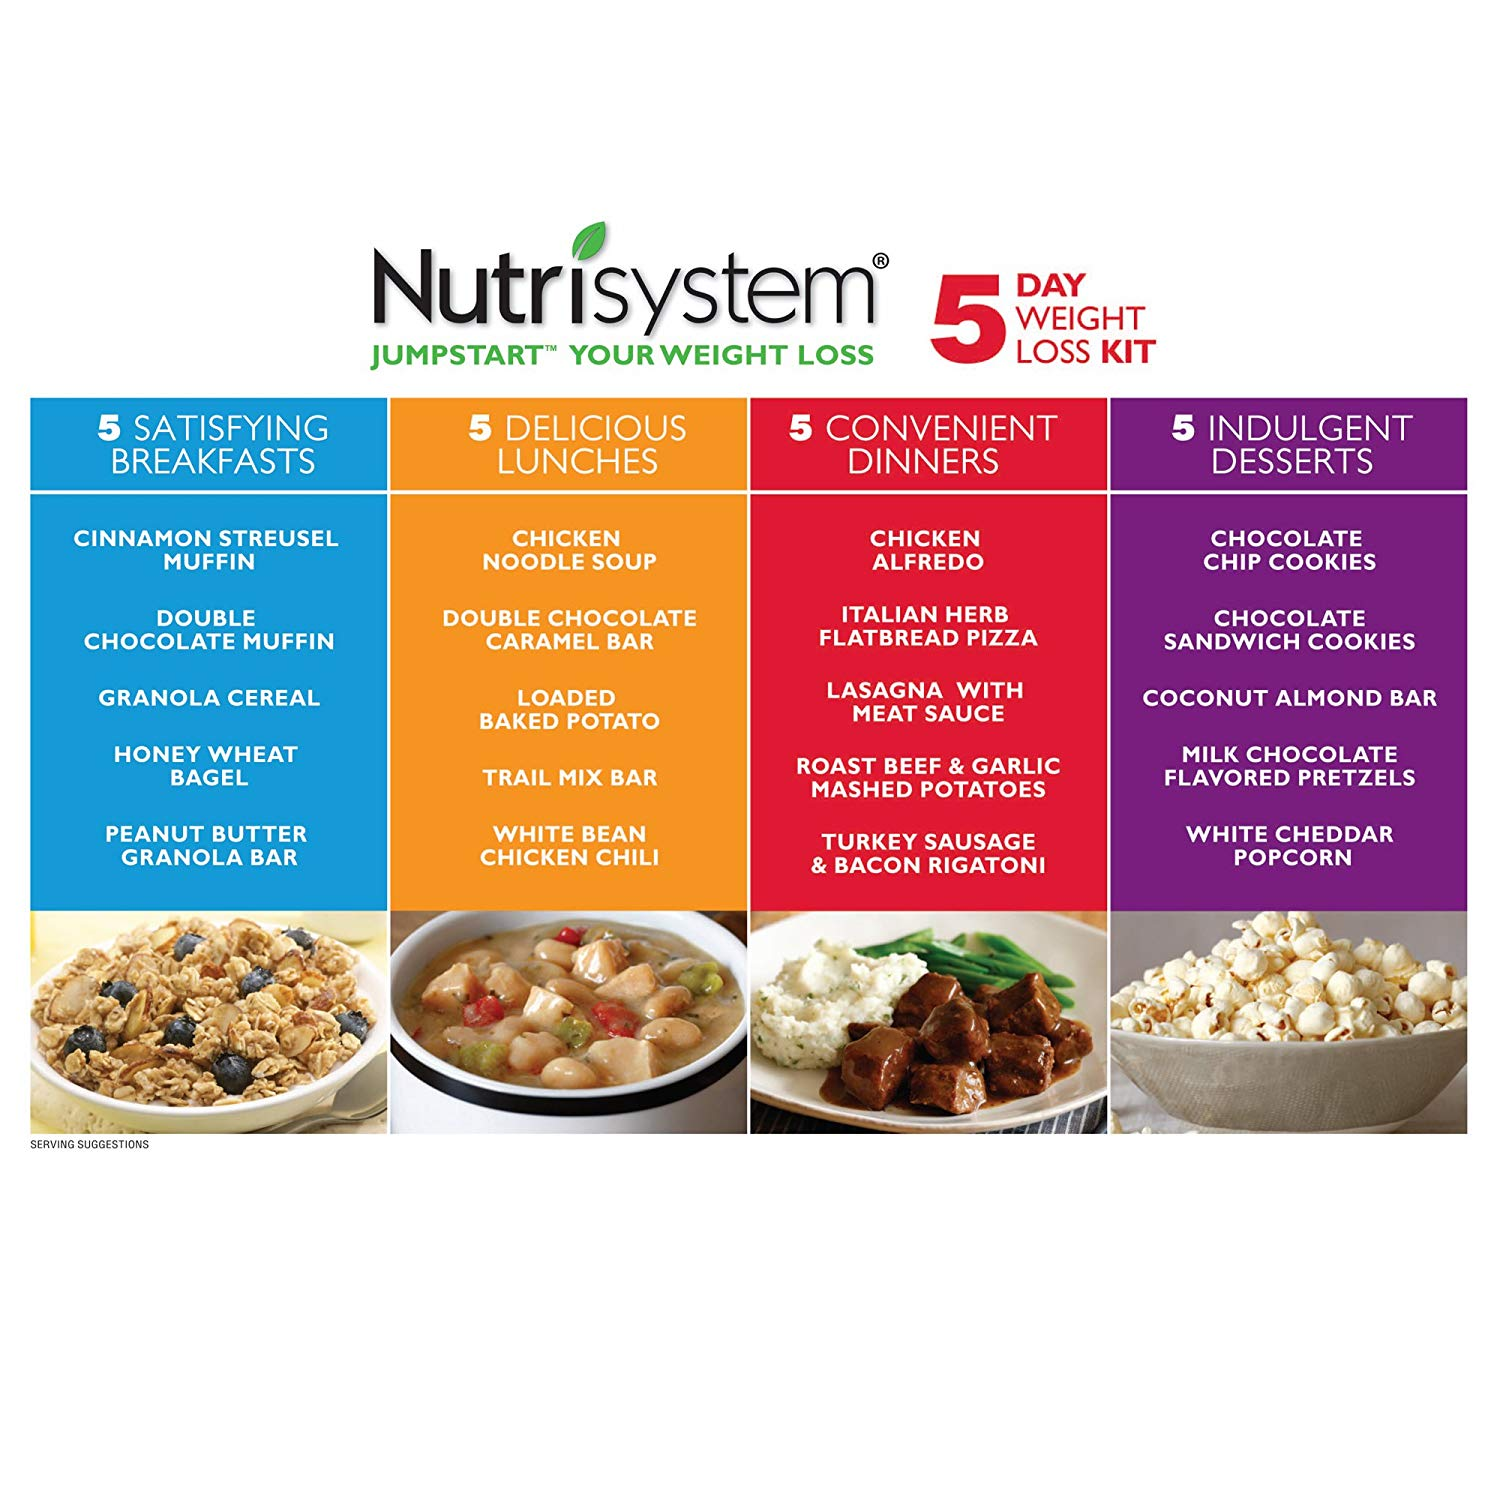 What-Nutrisystem-Is-Composed-Of-And-How-Does-It-Work